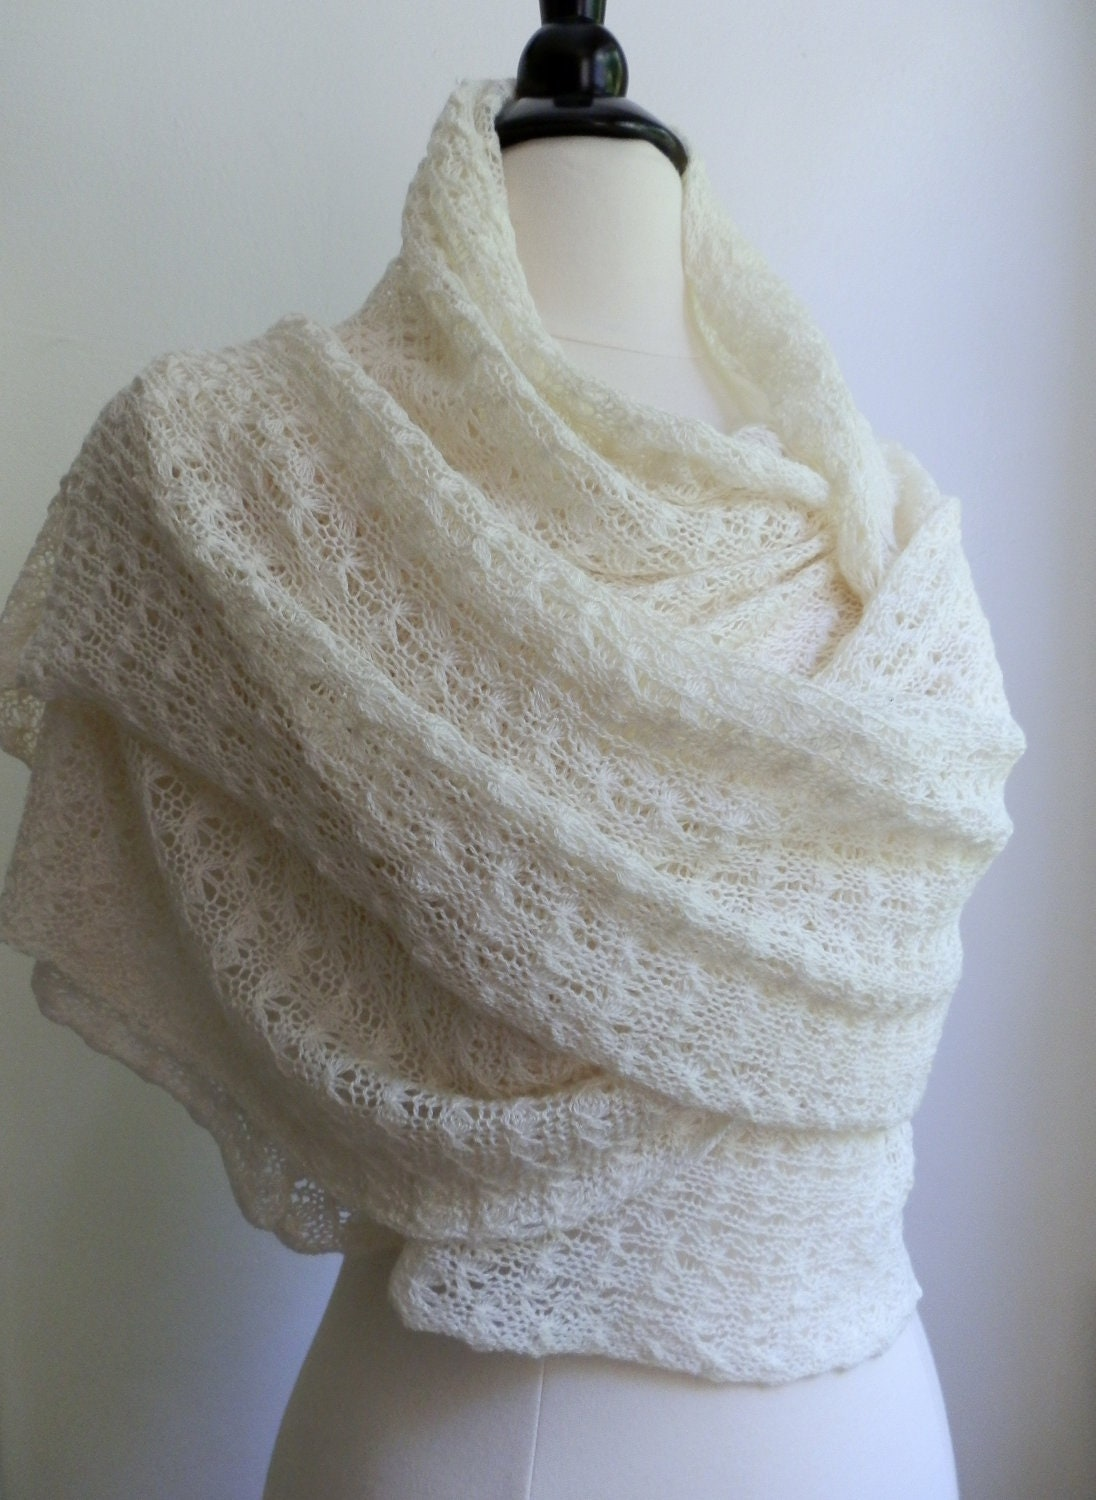 You searched for: white lace shawls! Etsy is the home to thousands of handmade, vintage, and one-of-a-kind products and gifts related to your search. No matter what you're looking for or where you are in the world, our global marketplace of sellers can help you find unique and affordable options. Let's get started!